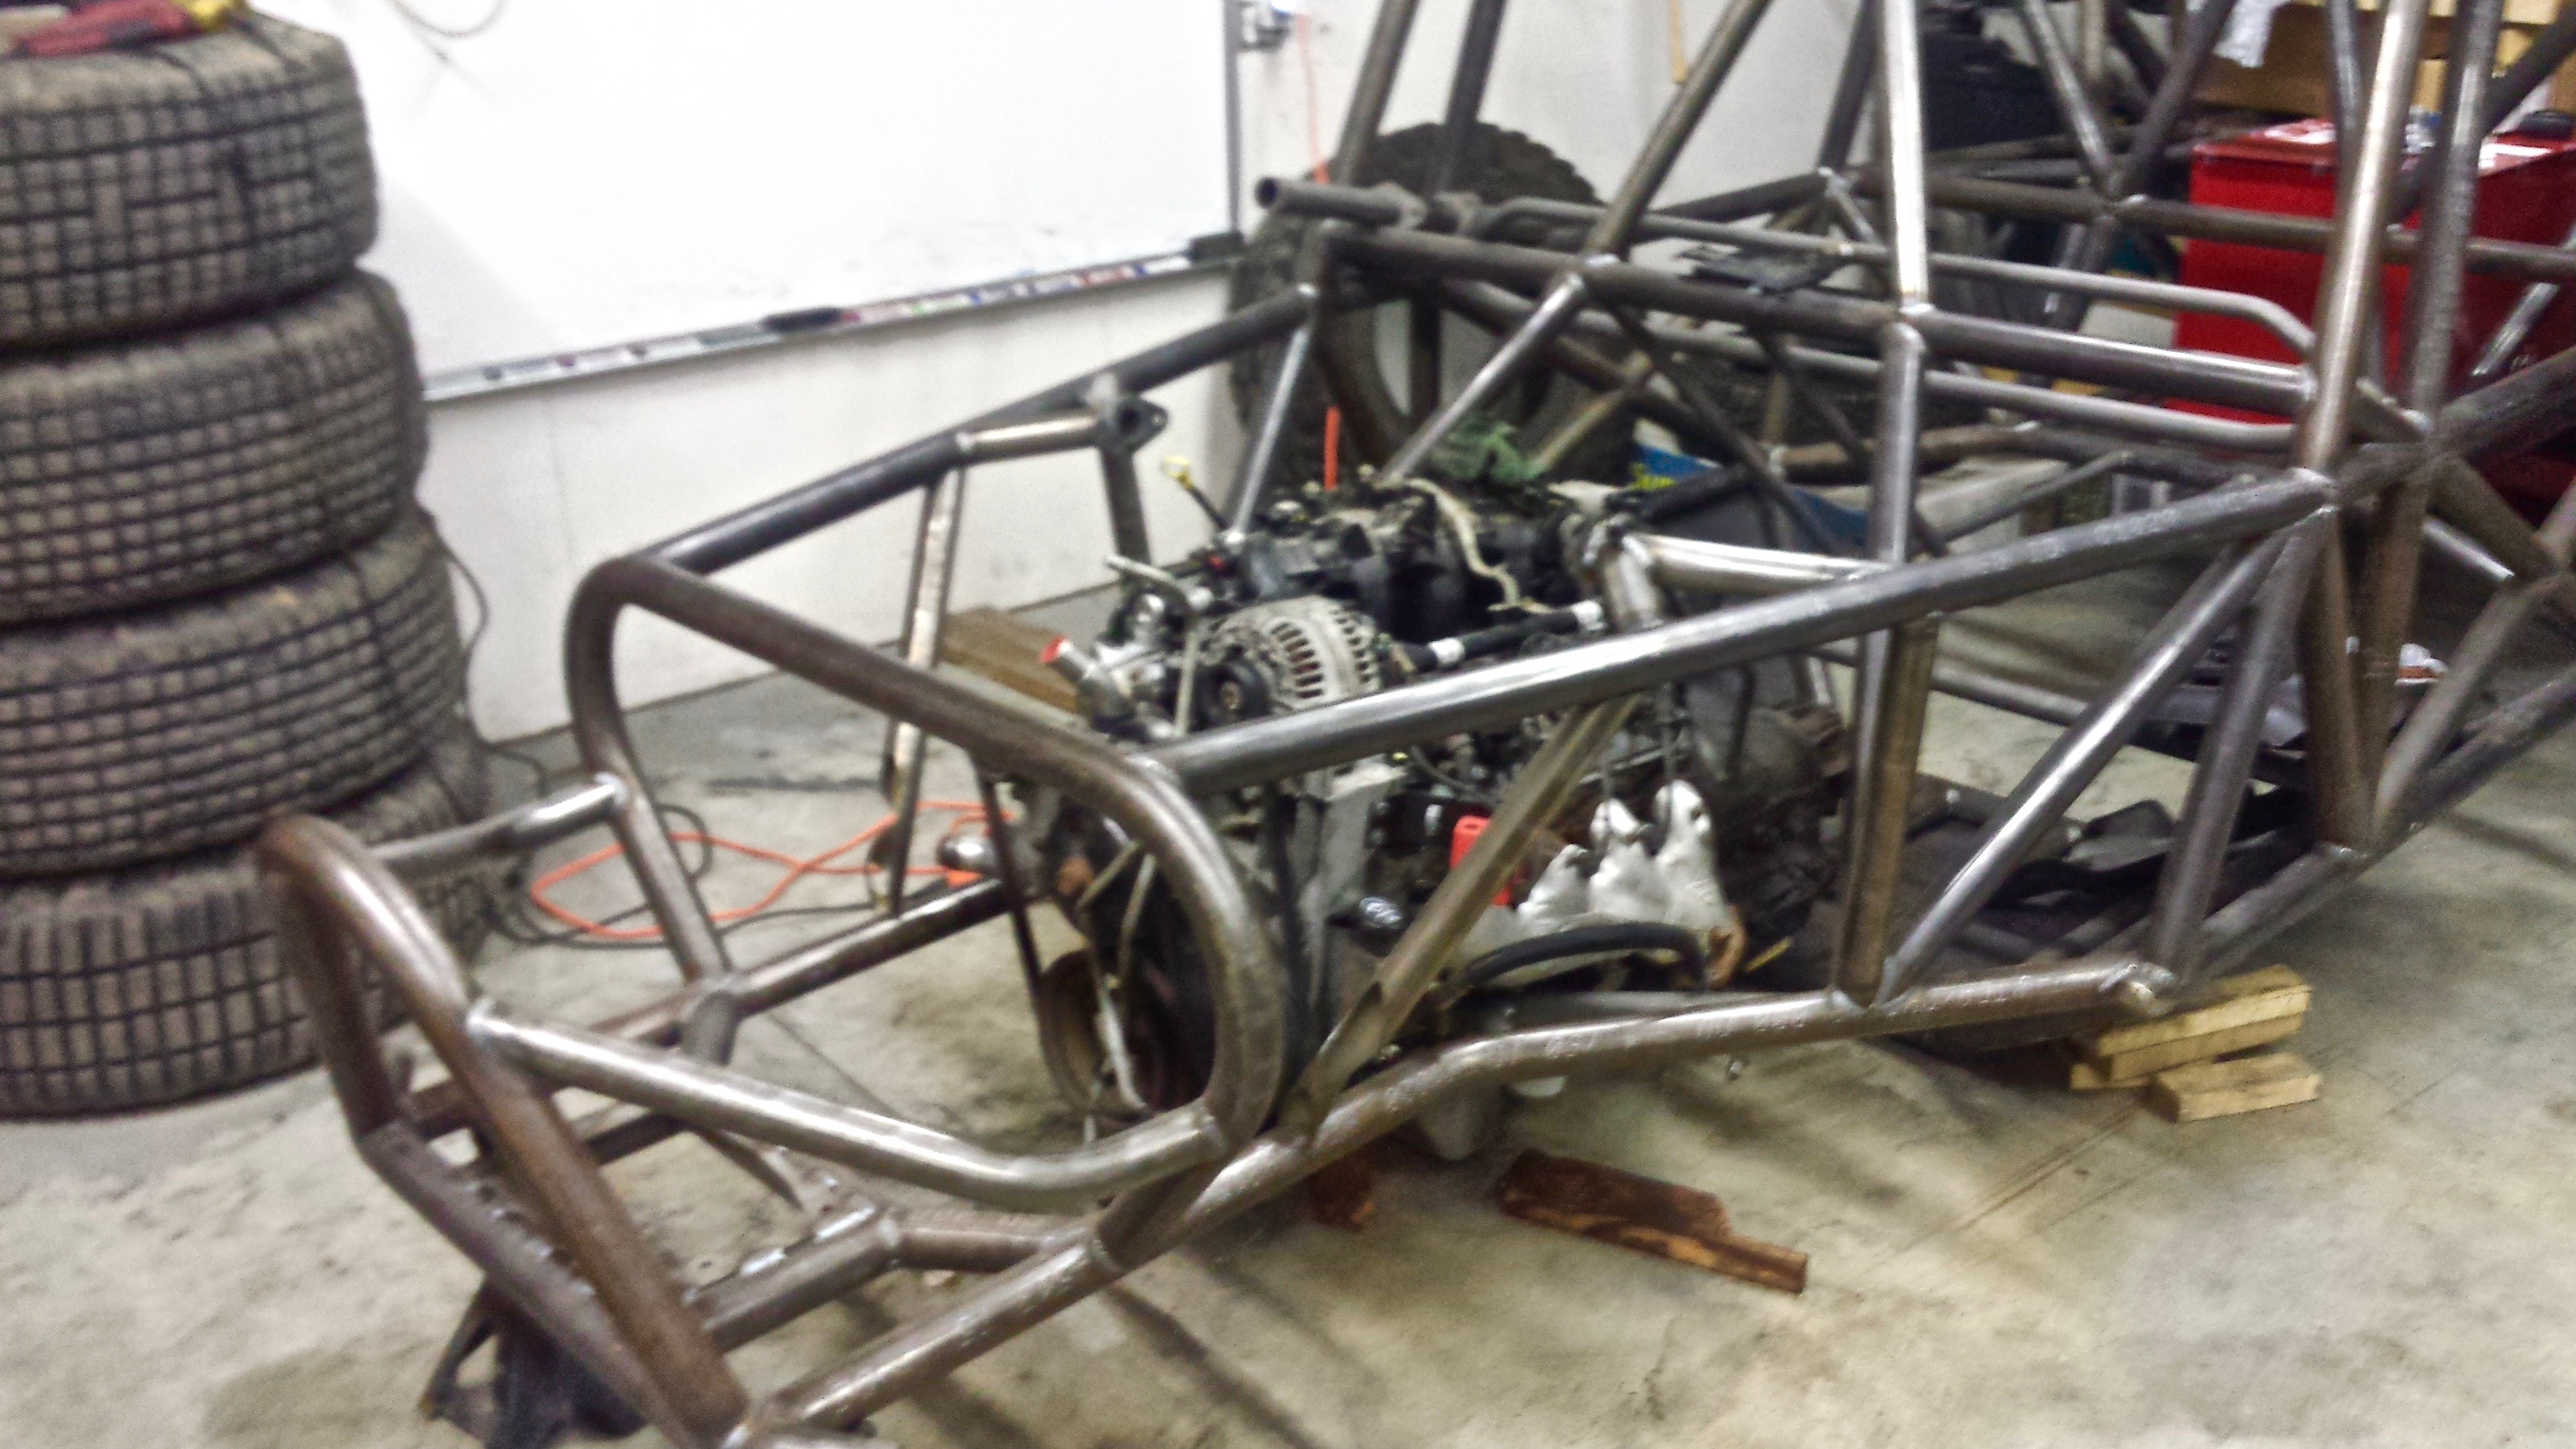 Nick Schaefer's buggy frame with 6.0L V-8 Cadillac Engine at his shop in Pleasant Grove, Utah